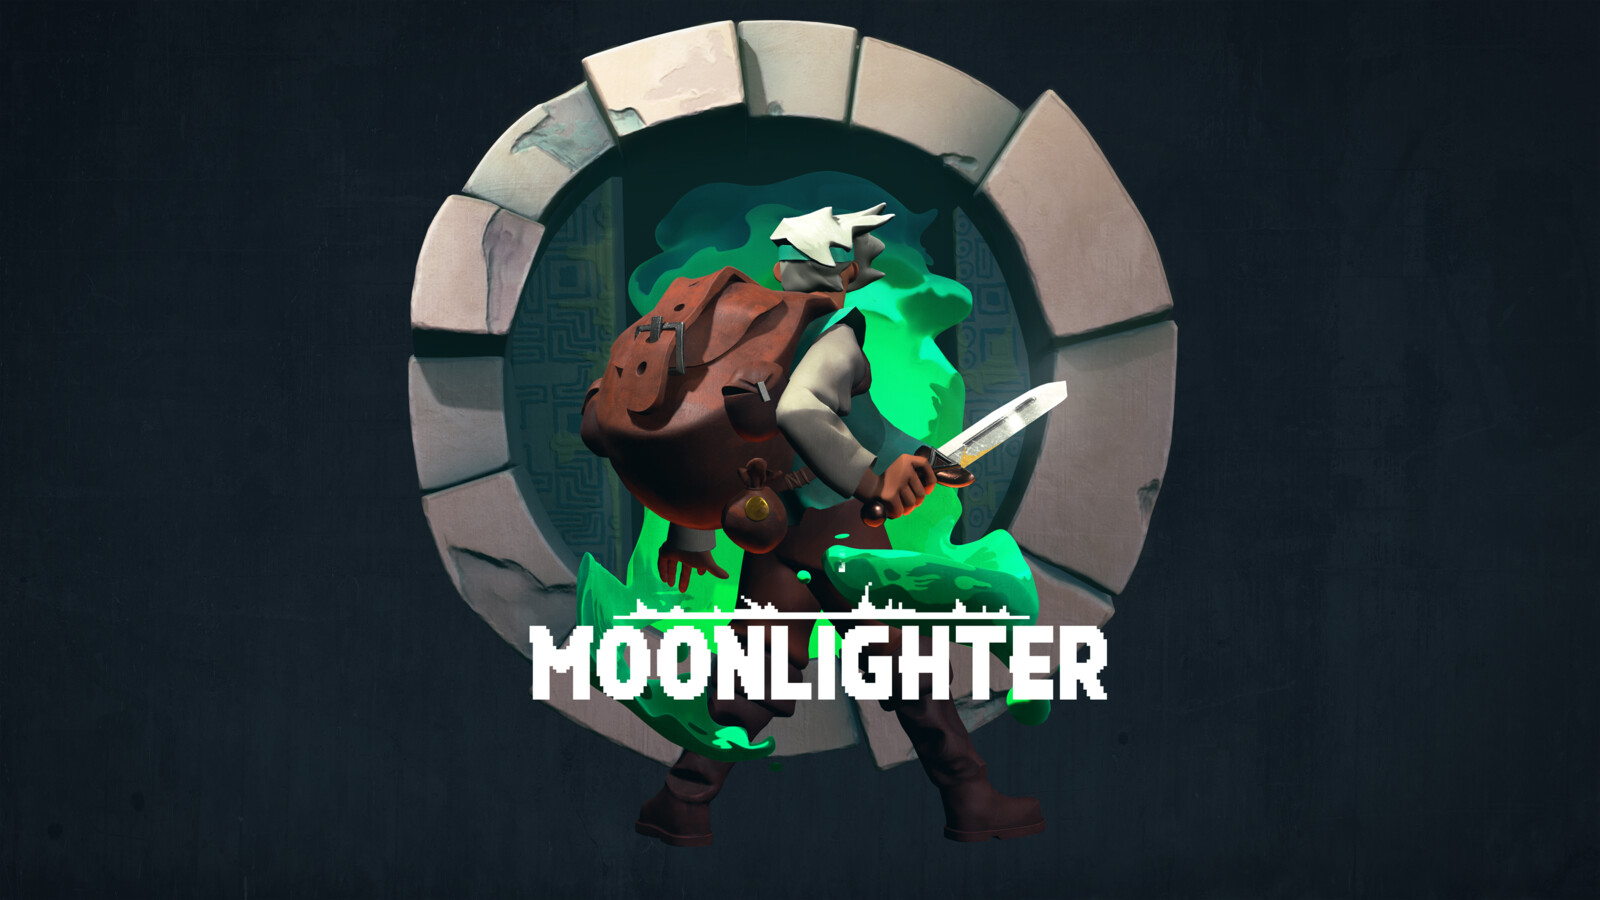 Moonlighter Fanart